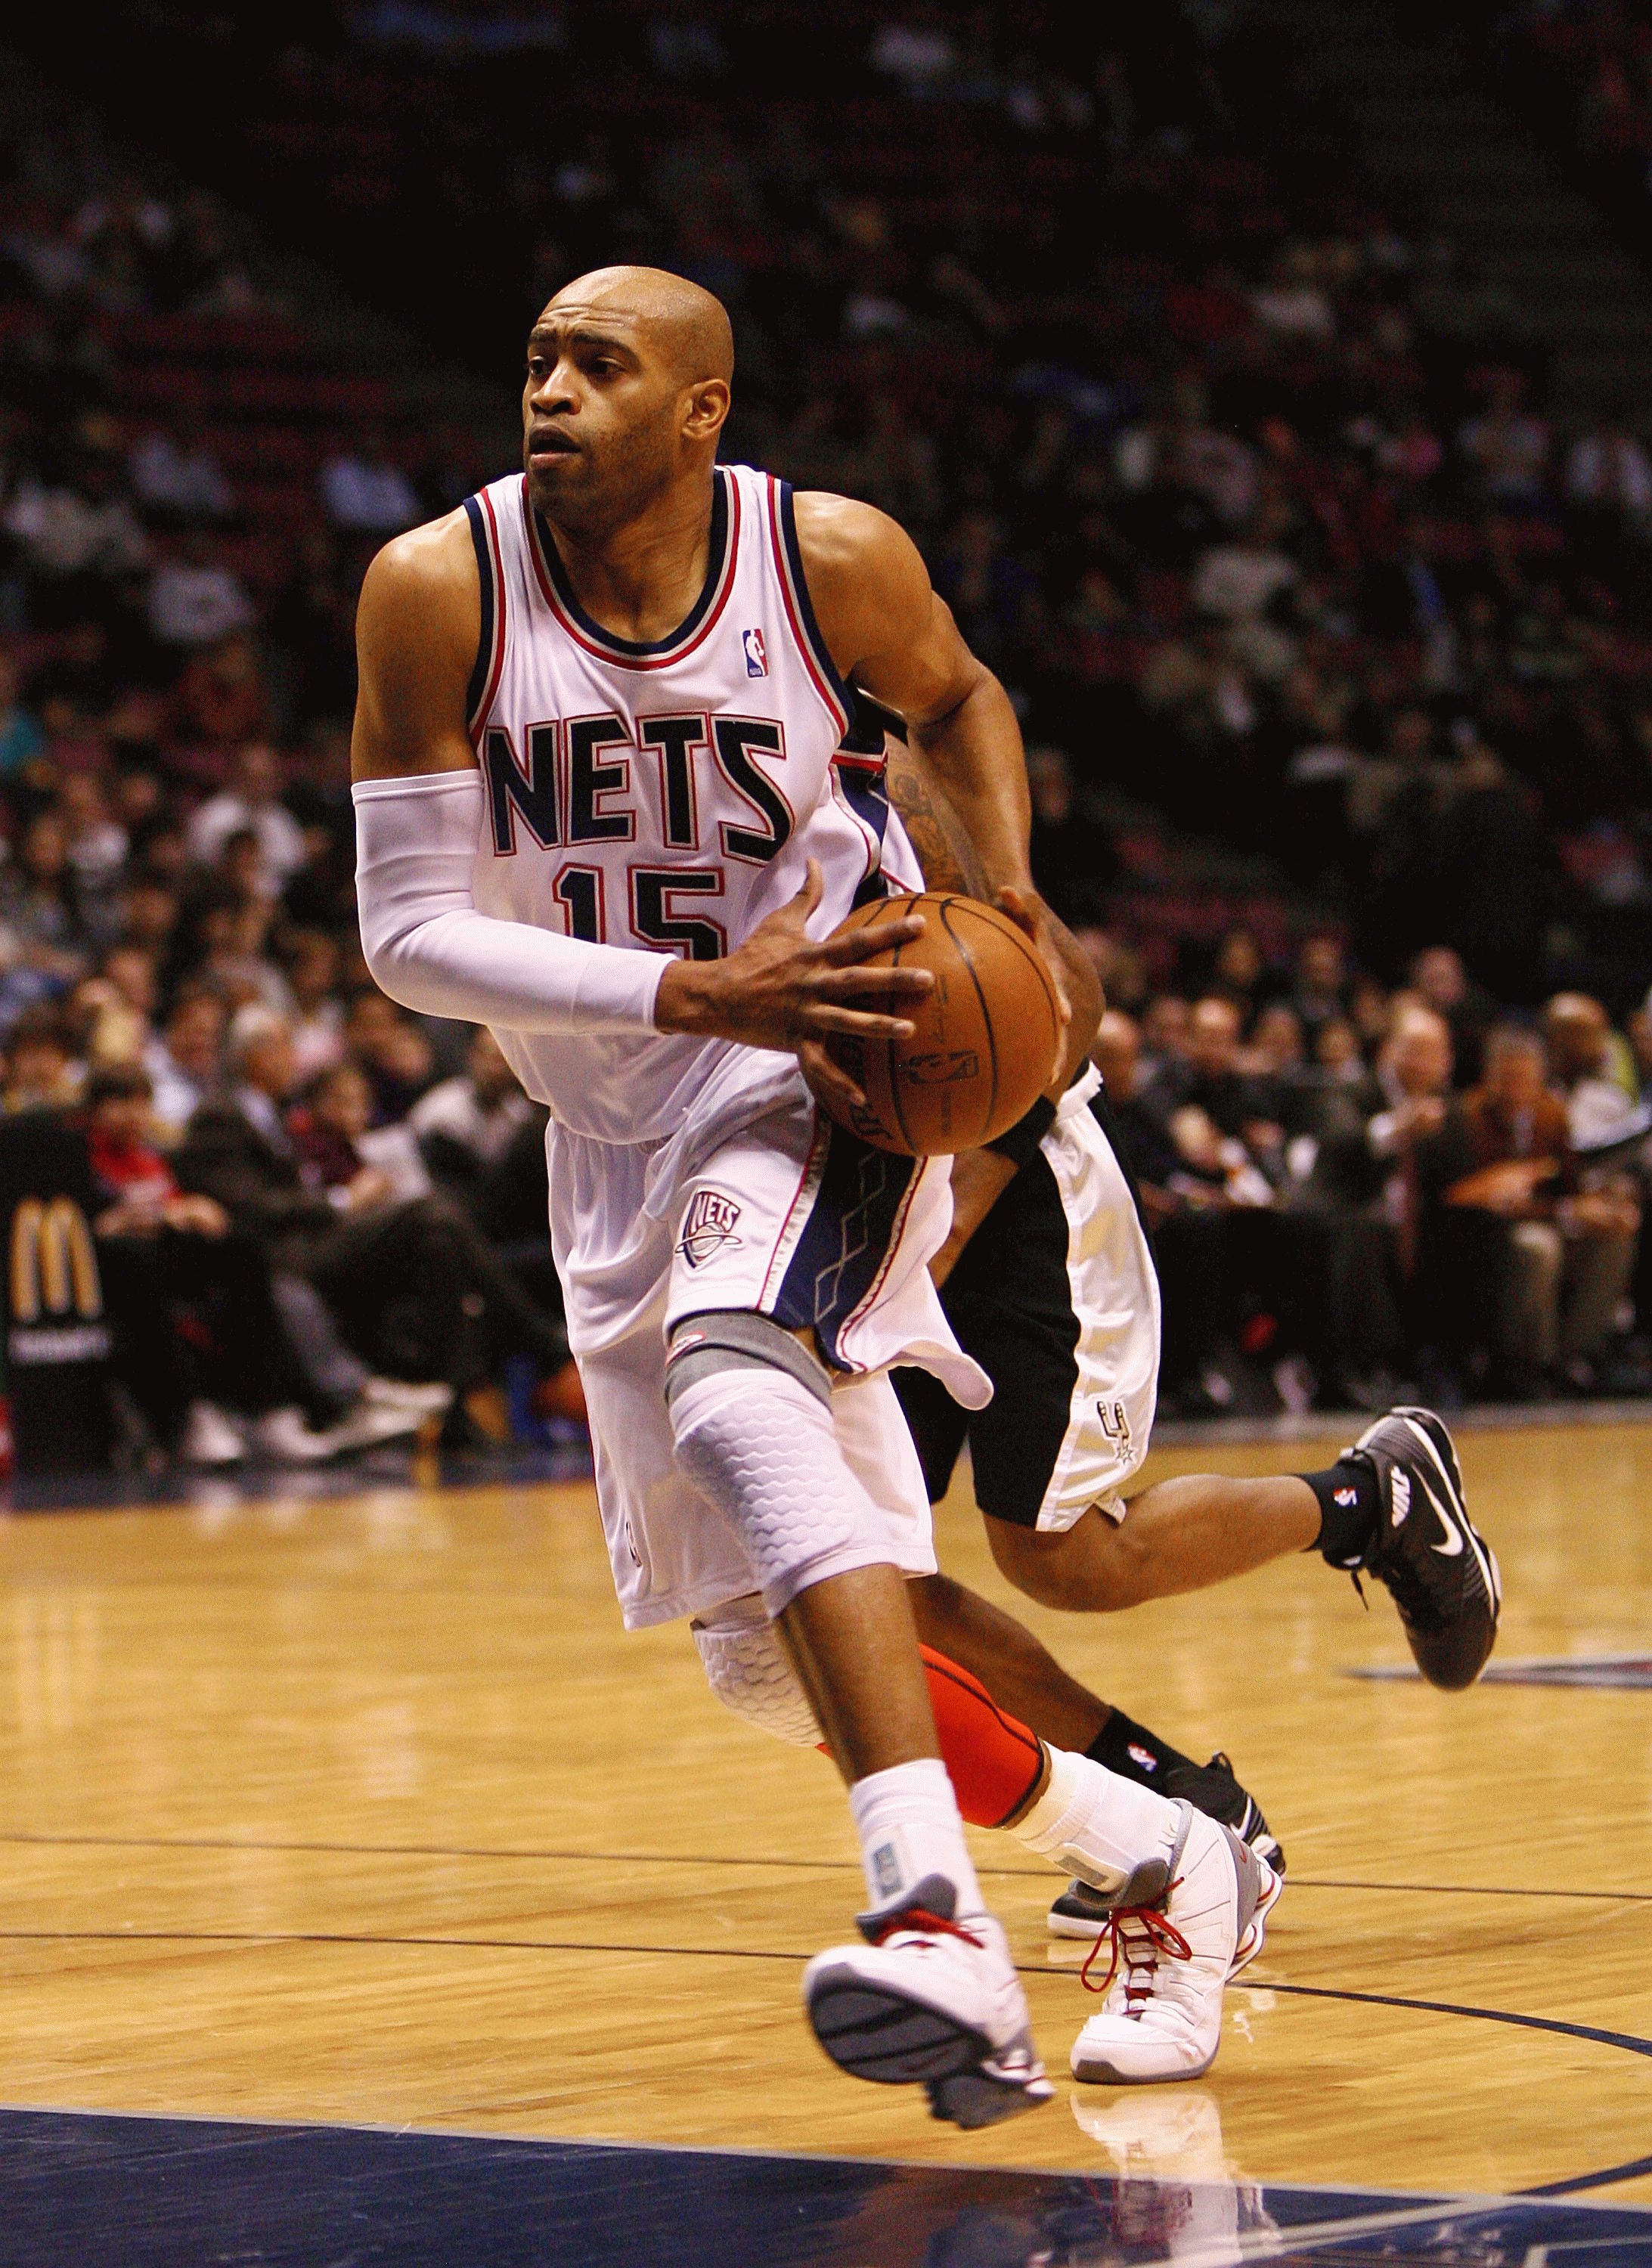 10c3994a89b EAST RUTHERFORD, NJ - FEBRUARY 10: Vince Carter #15 of the New Jersey